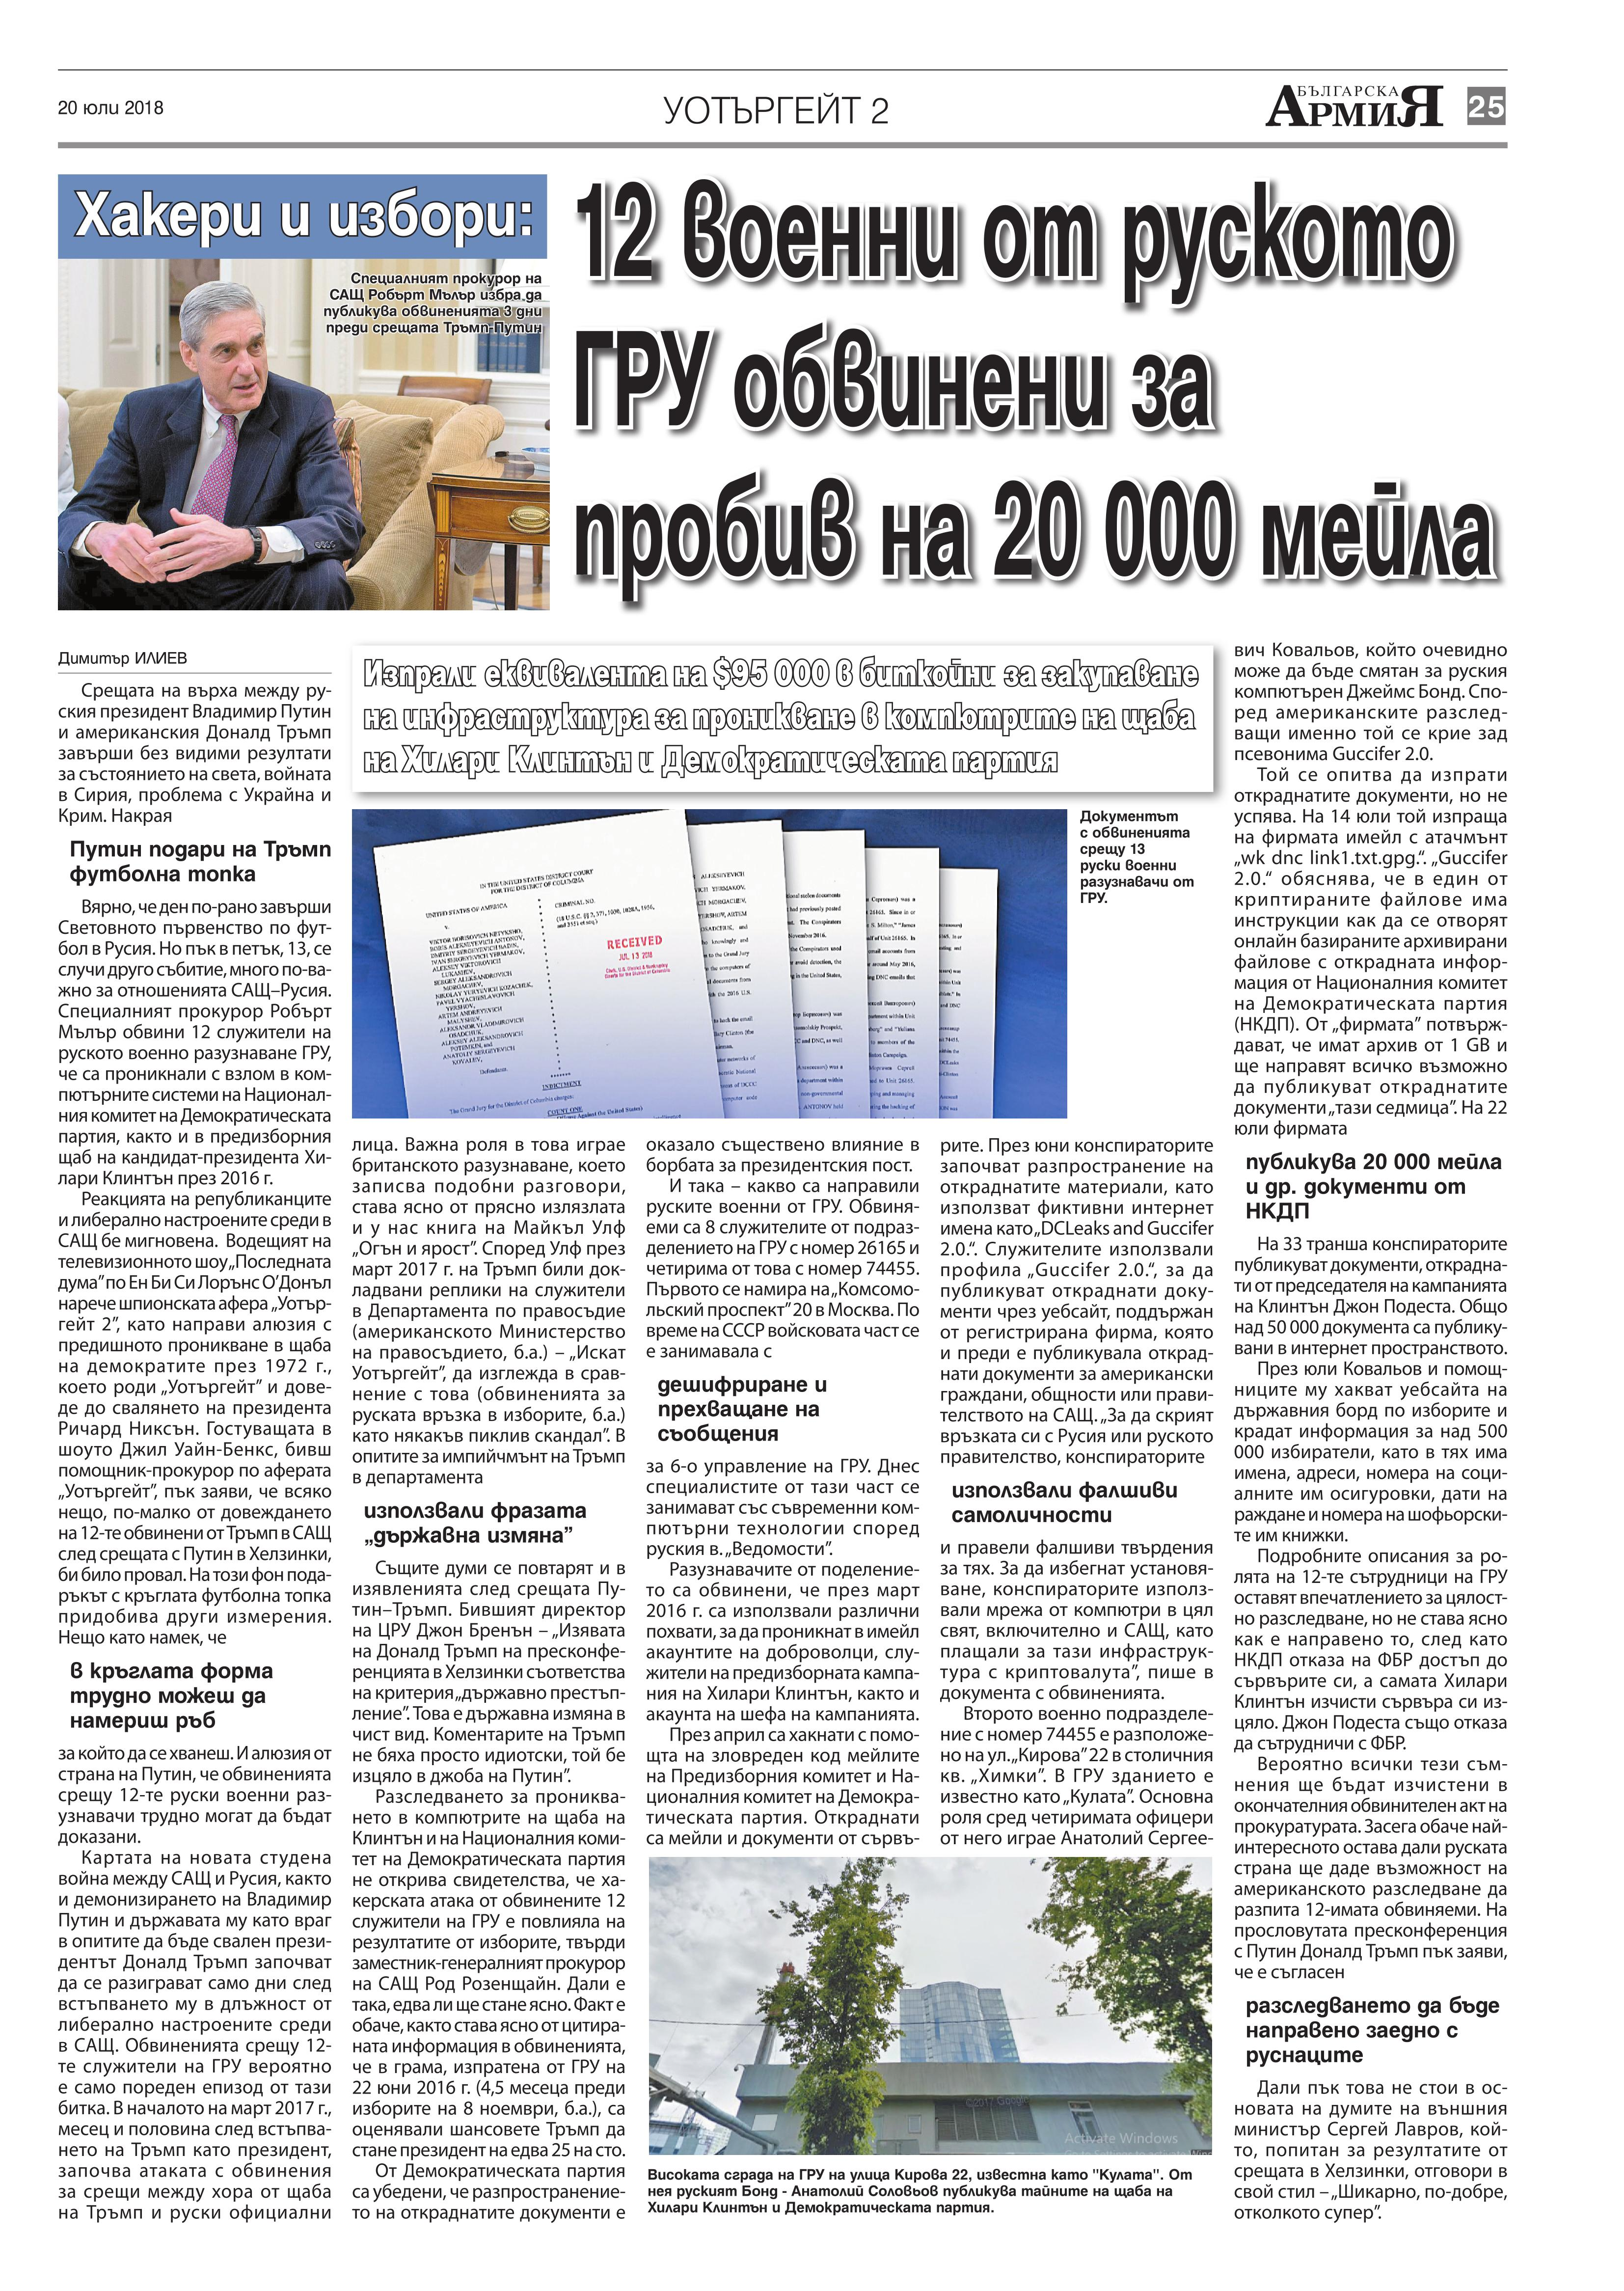 https://armymedia.bg/wp-content/uploads/2015/06/25.page1_-52.jpg